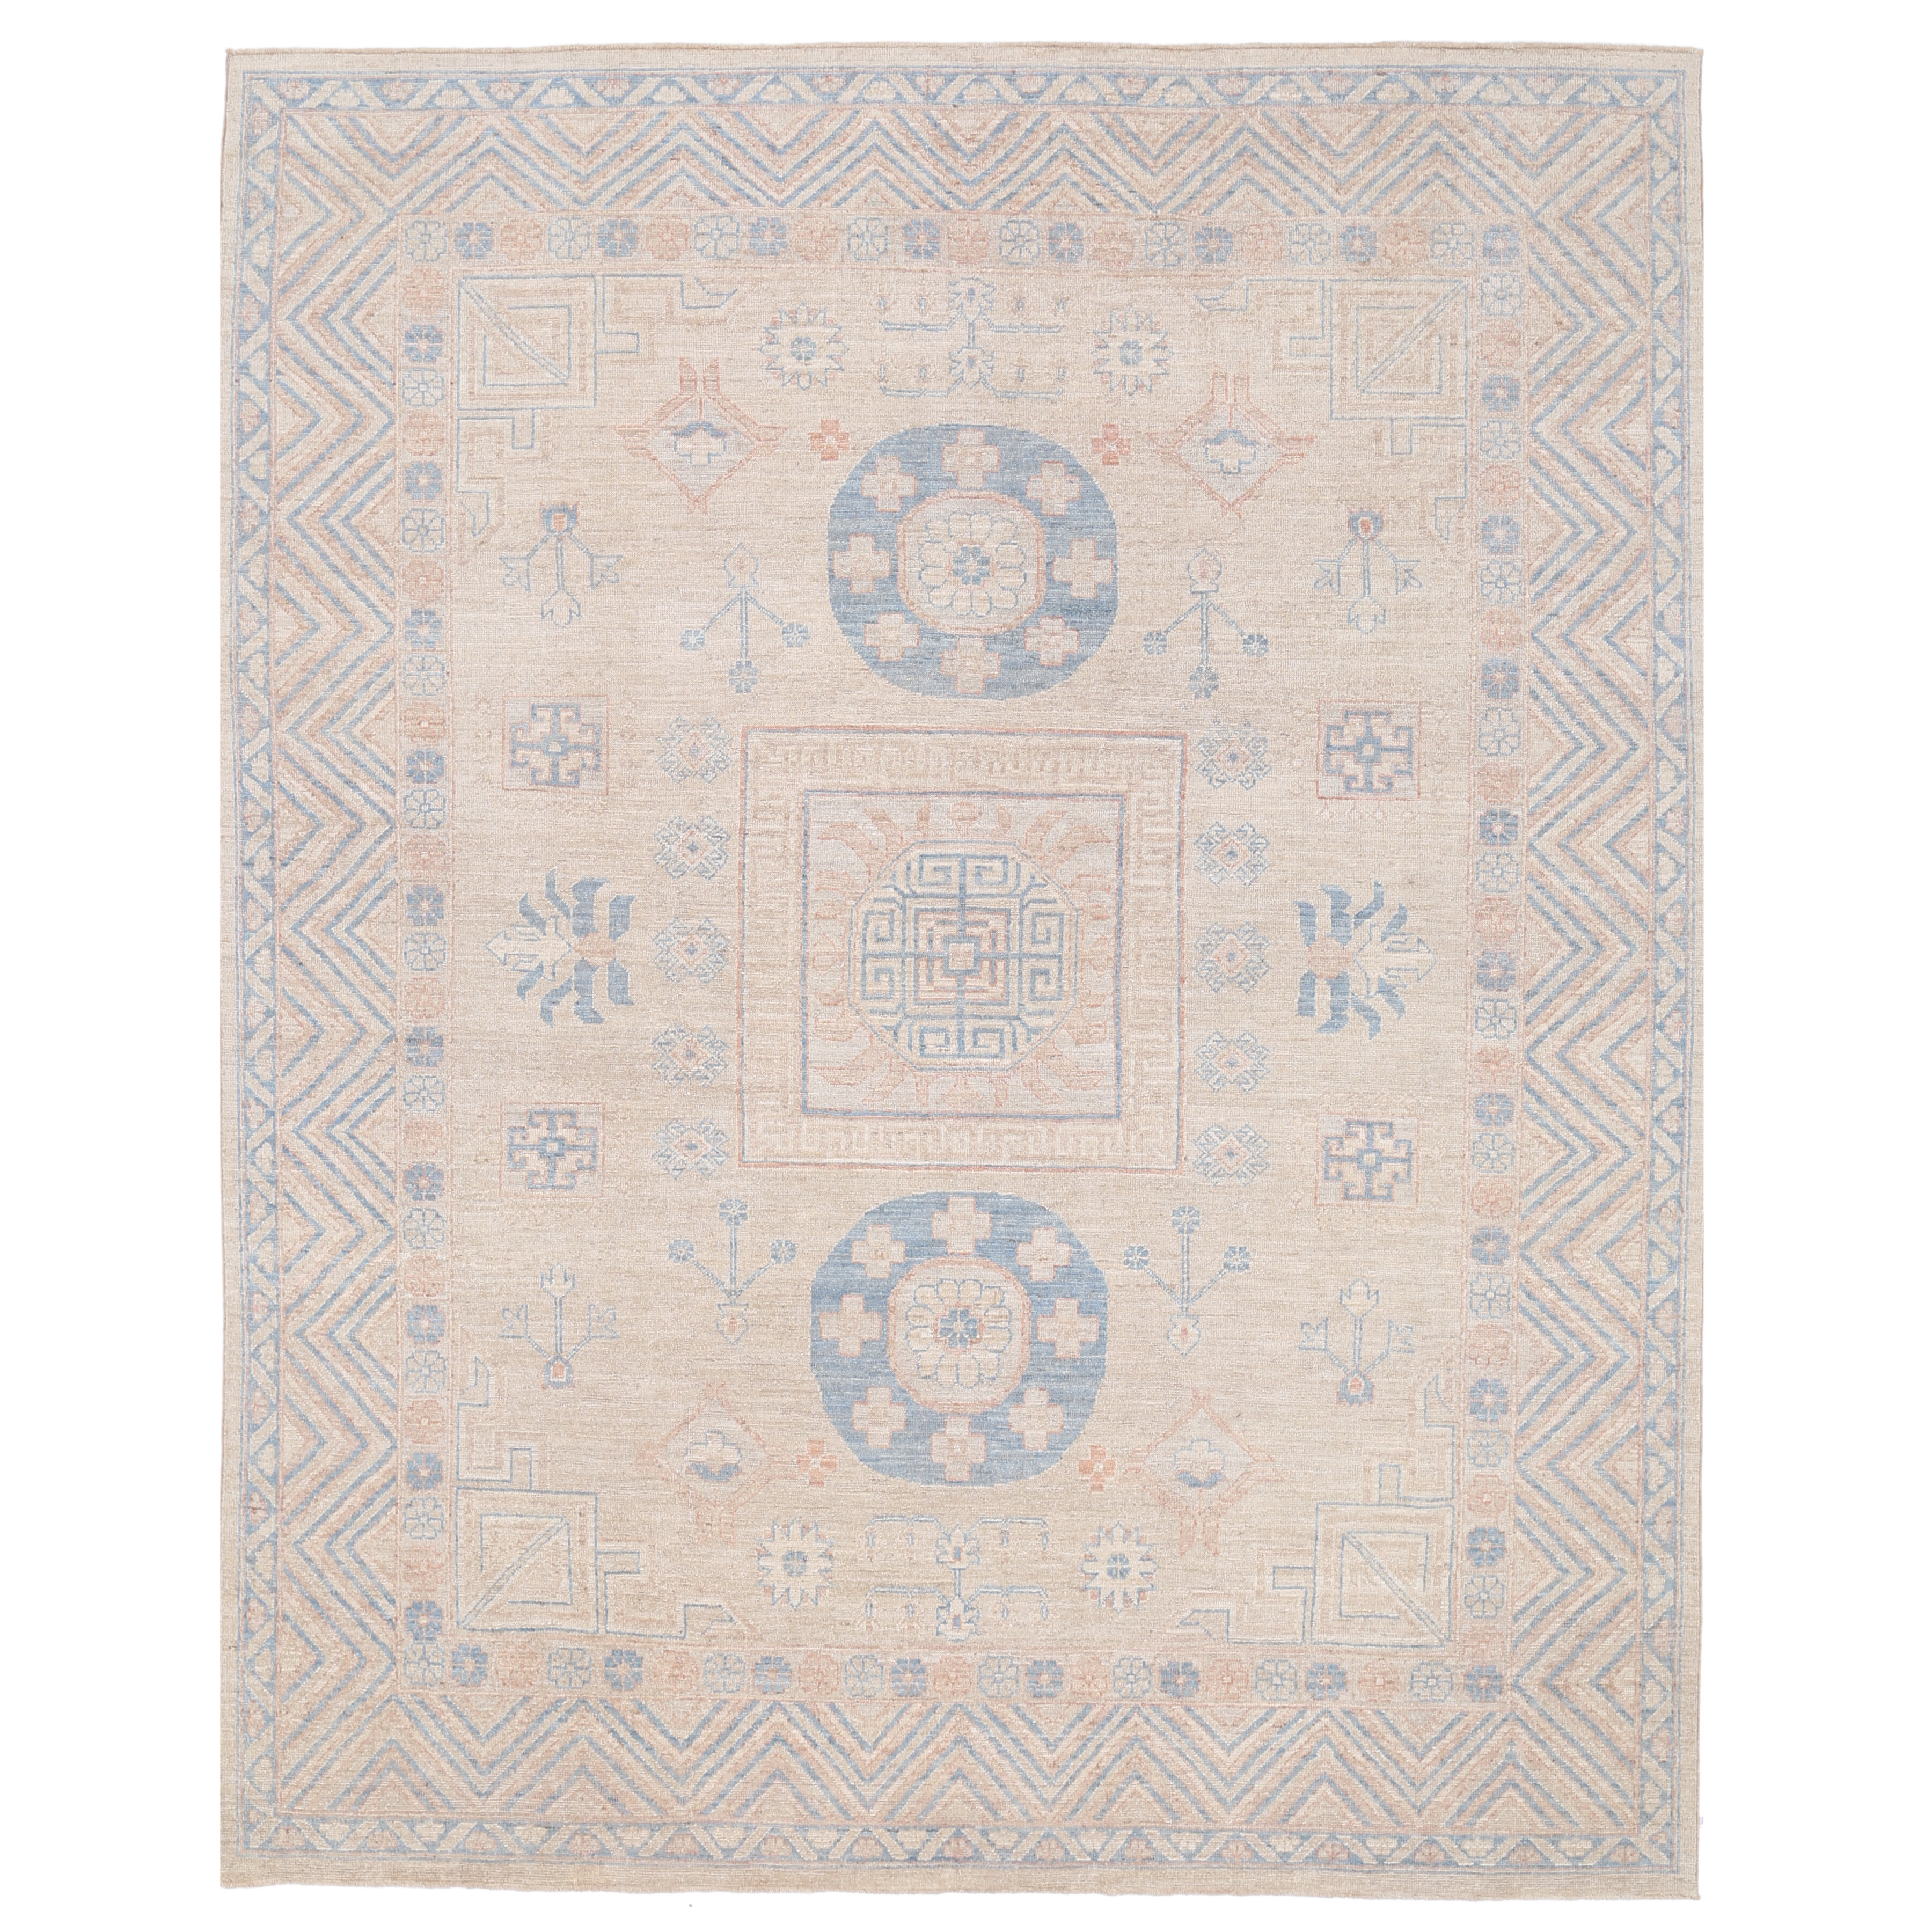 Vegetable Dyed Hand Knotted Floral Oushak Ivory Persian: Herat Oriental Vegetable Dye Hand-Knotted Ivory / Blue